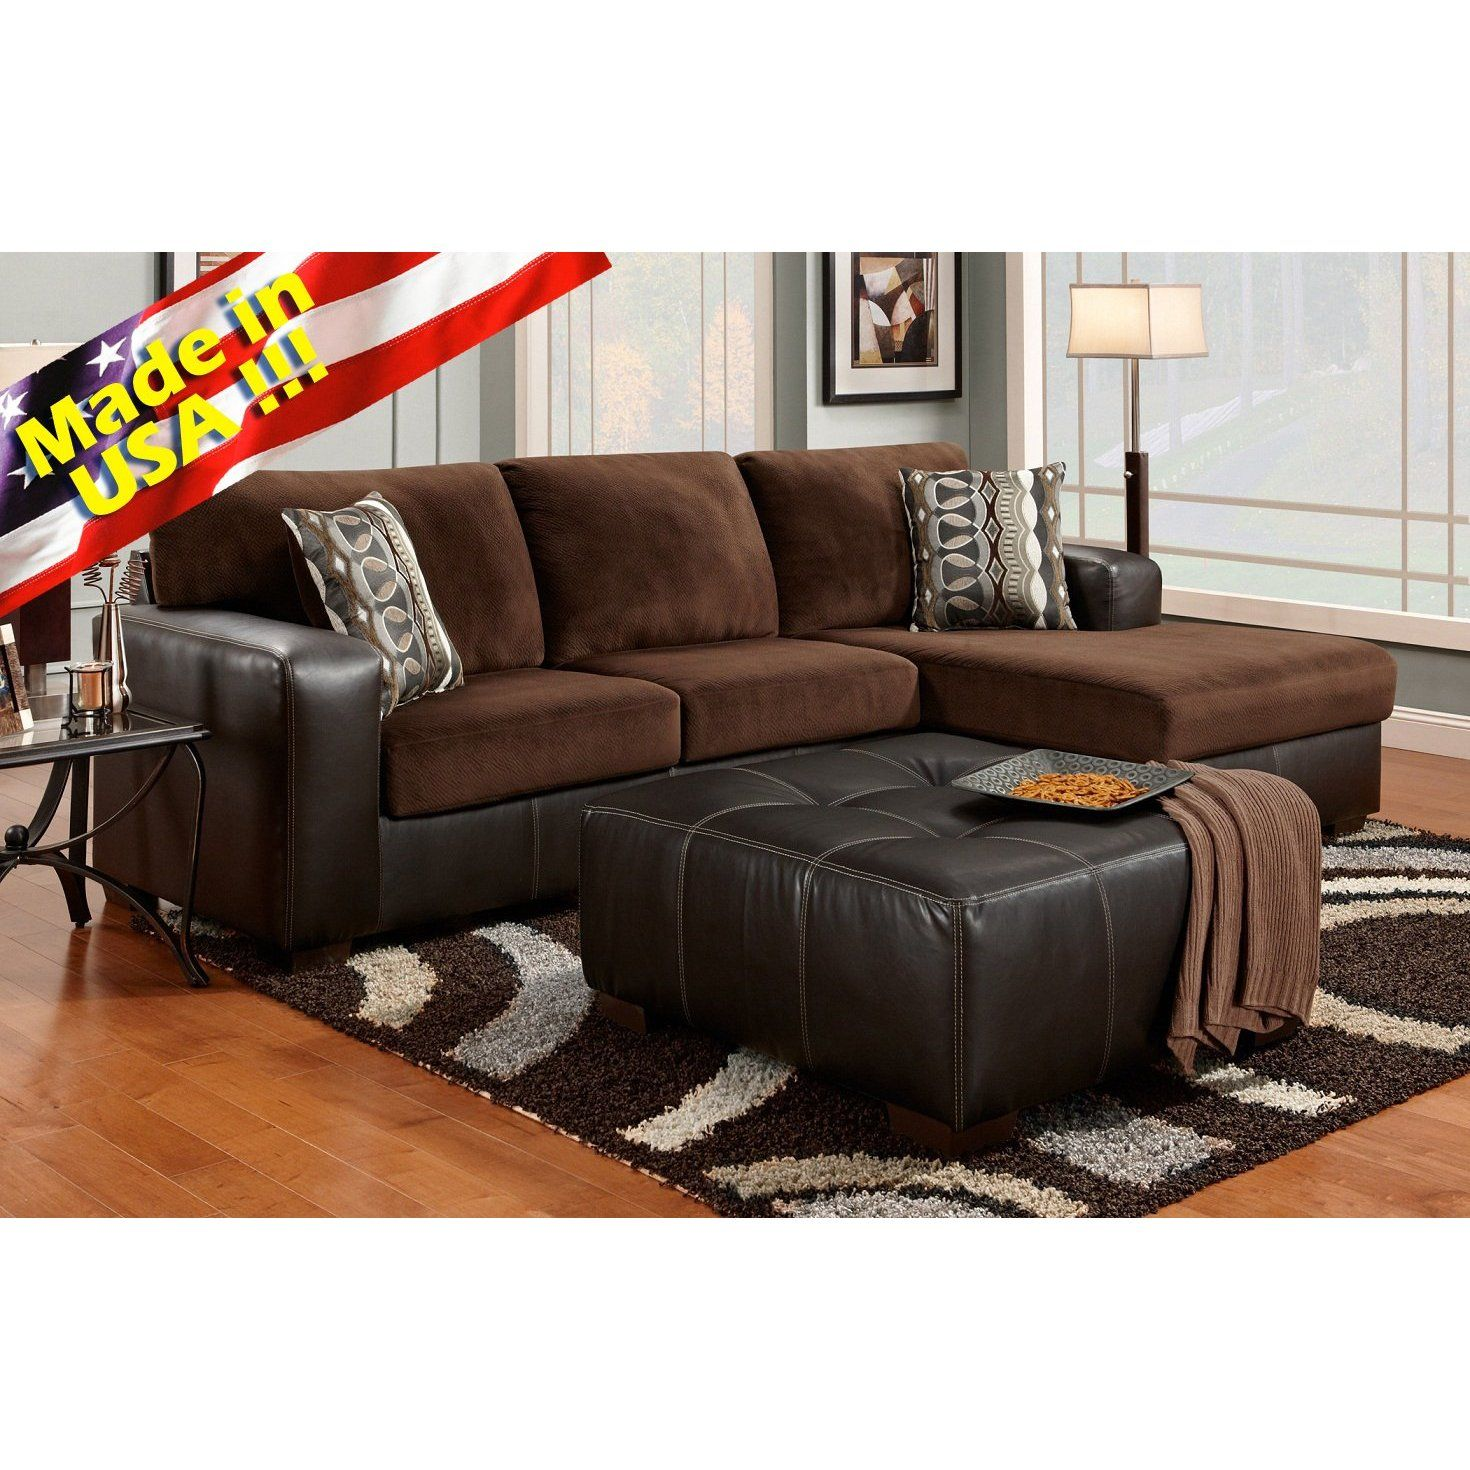 Incredible Cumulus Brown Chocolate Two Toned Sectional Sofa Chaise Set Cjindustries Chair Design For Home Cjindustriesco